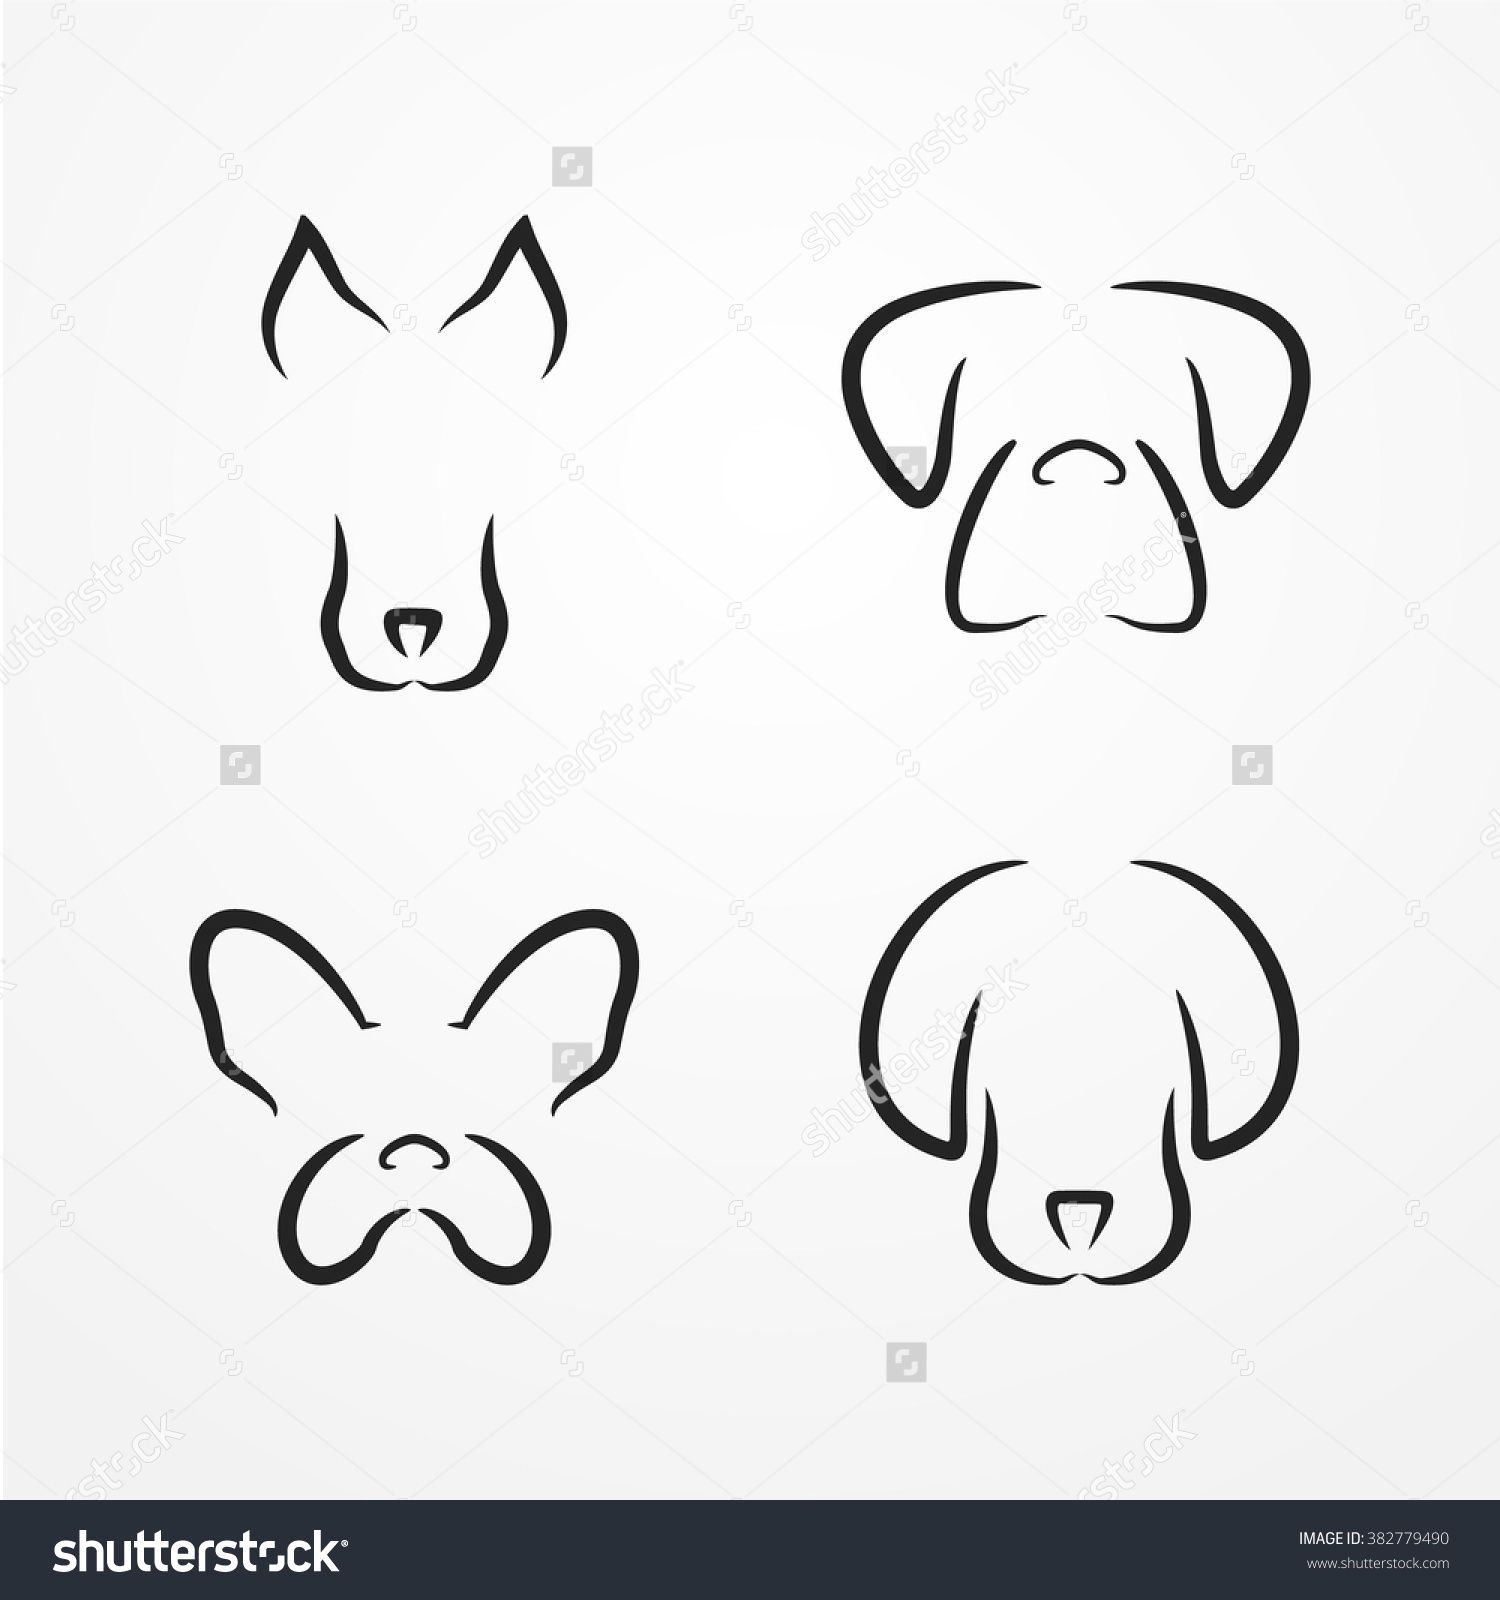 Abstract Dog Logotype Collection Cute Dog Heads In Silhouette